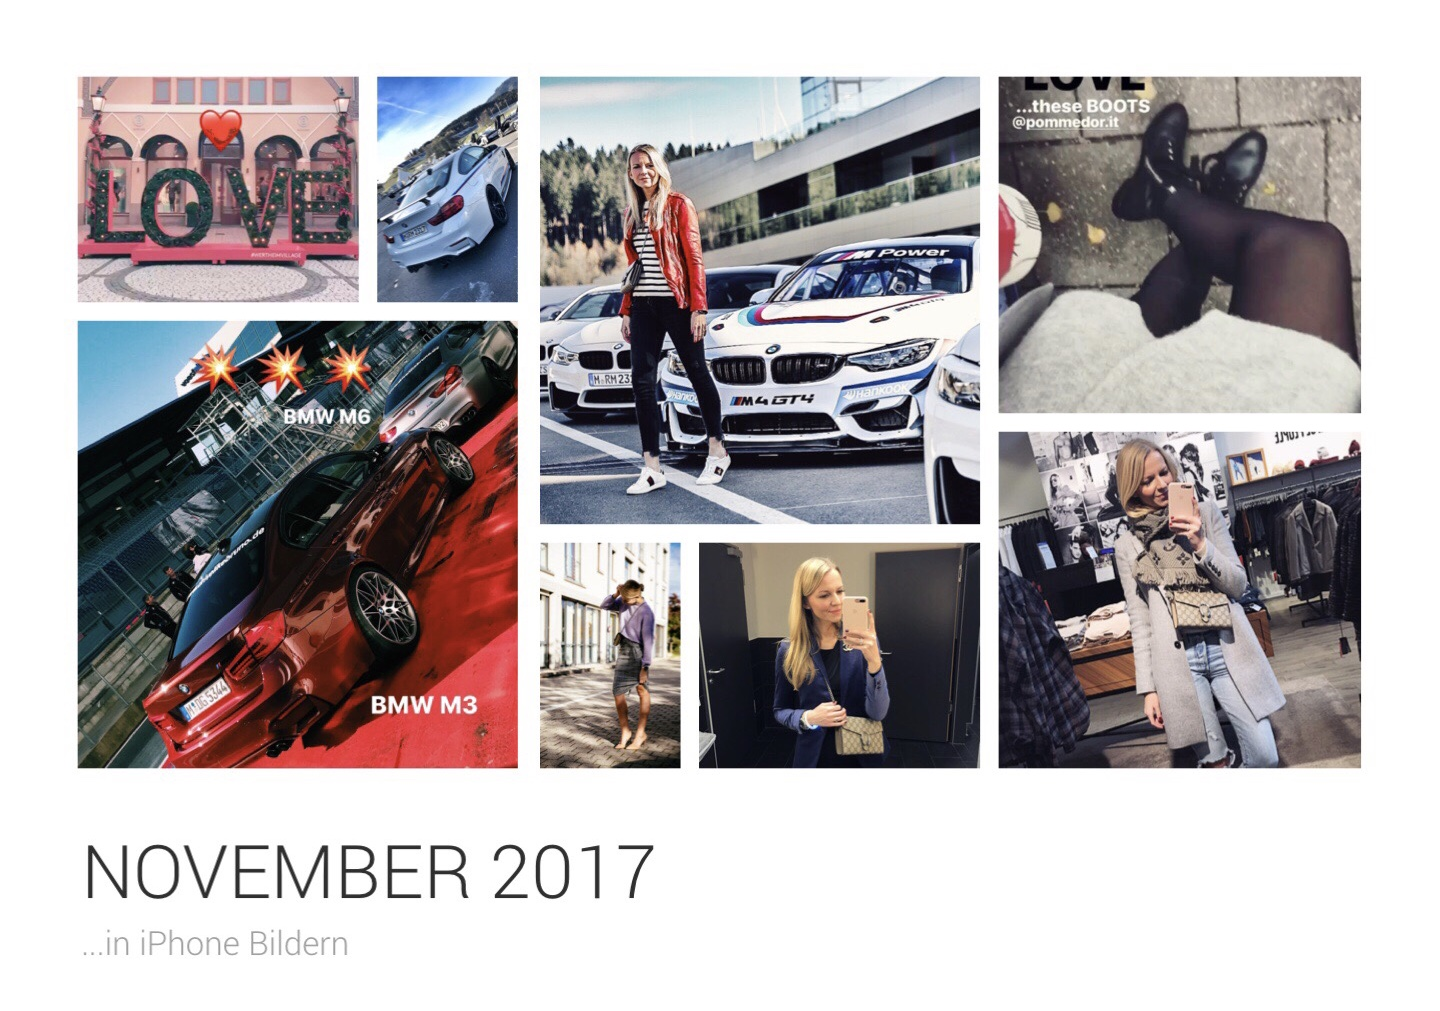 Monatsrückblick November 2017 BMW BMW i3 Dezember Drive Like Bruno Fashionette Fendi Melvin & Hamilton Monatsrückblick November Shopping Spielberg Wochenrückblick Automobile Bags Cars Fashion Herbst Jennifer Lifestyle Mode Reisen Travel BMWWelt